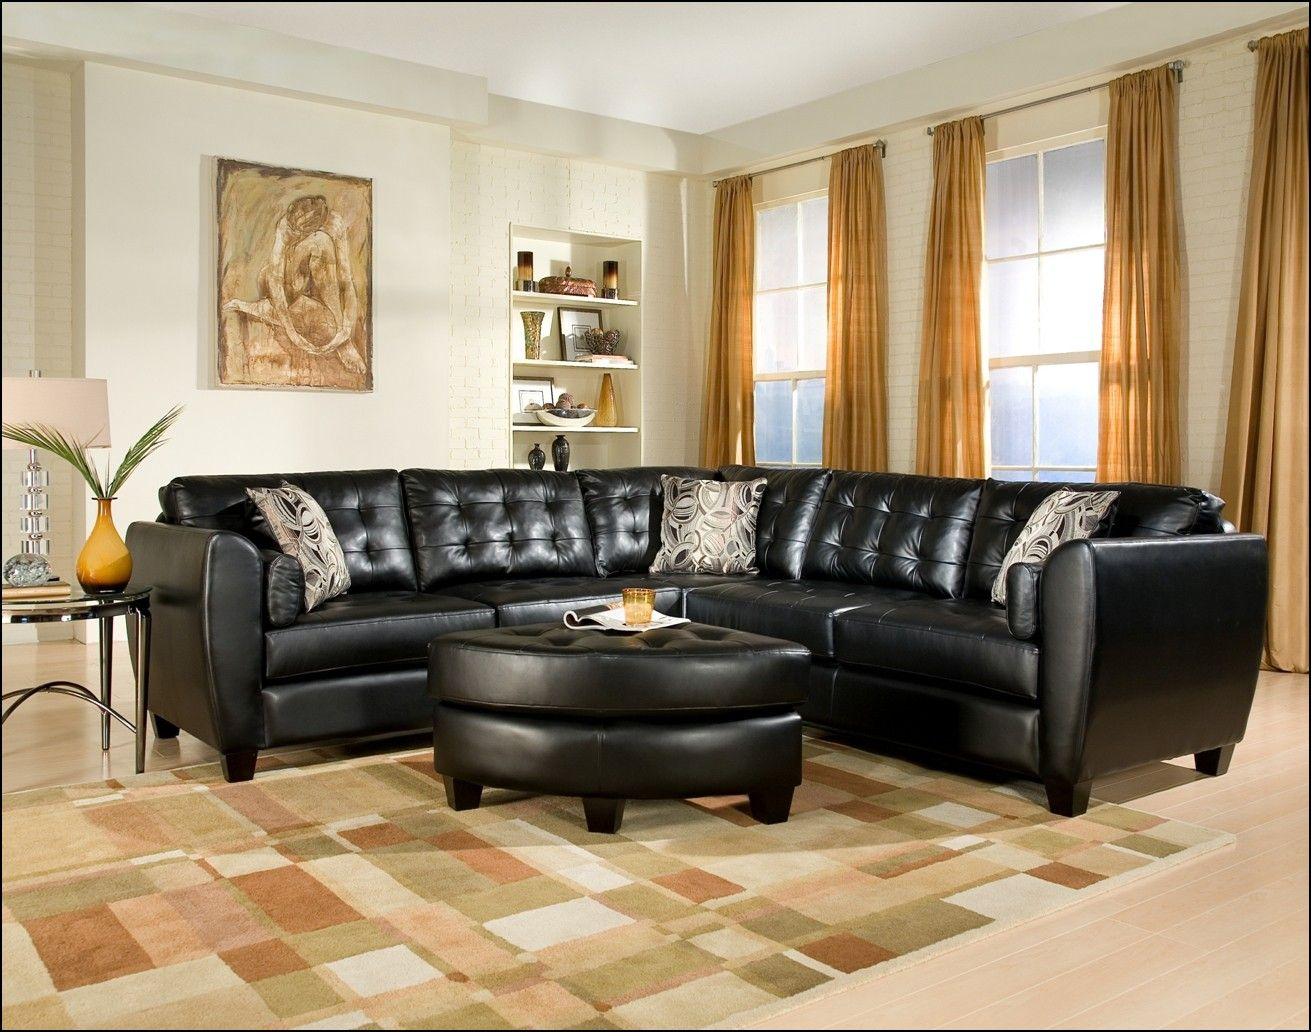 Exceptional Curtains To Go With Black Leather Sofa